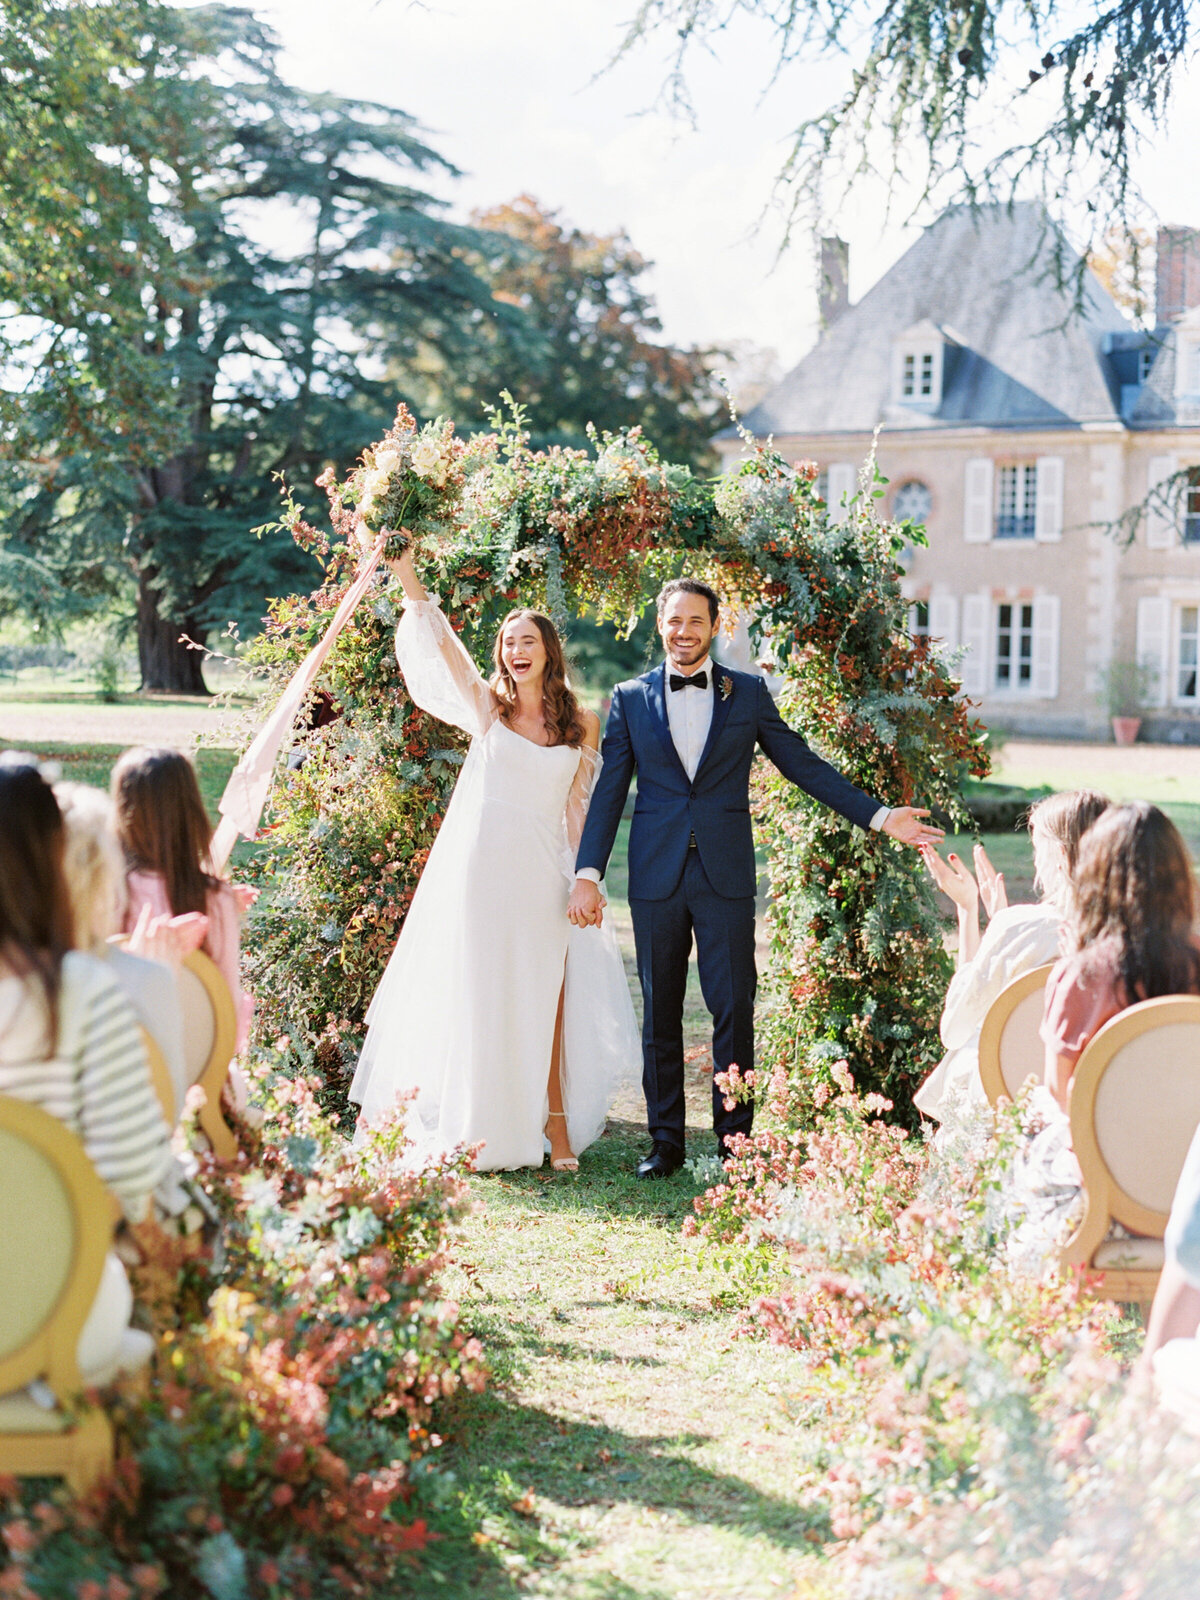 chateau-bouthonvilliers-wedding-paris-wedding-photographer-mackenzie-reiter-photography-99